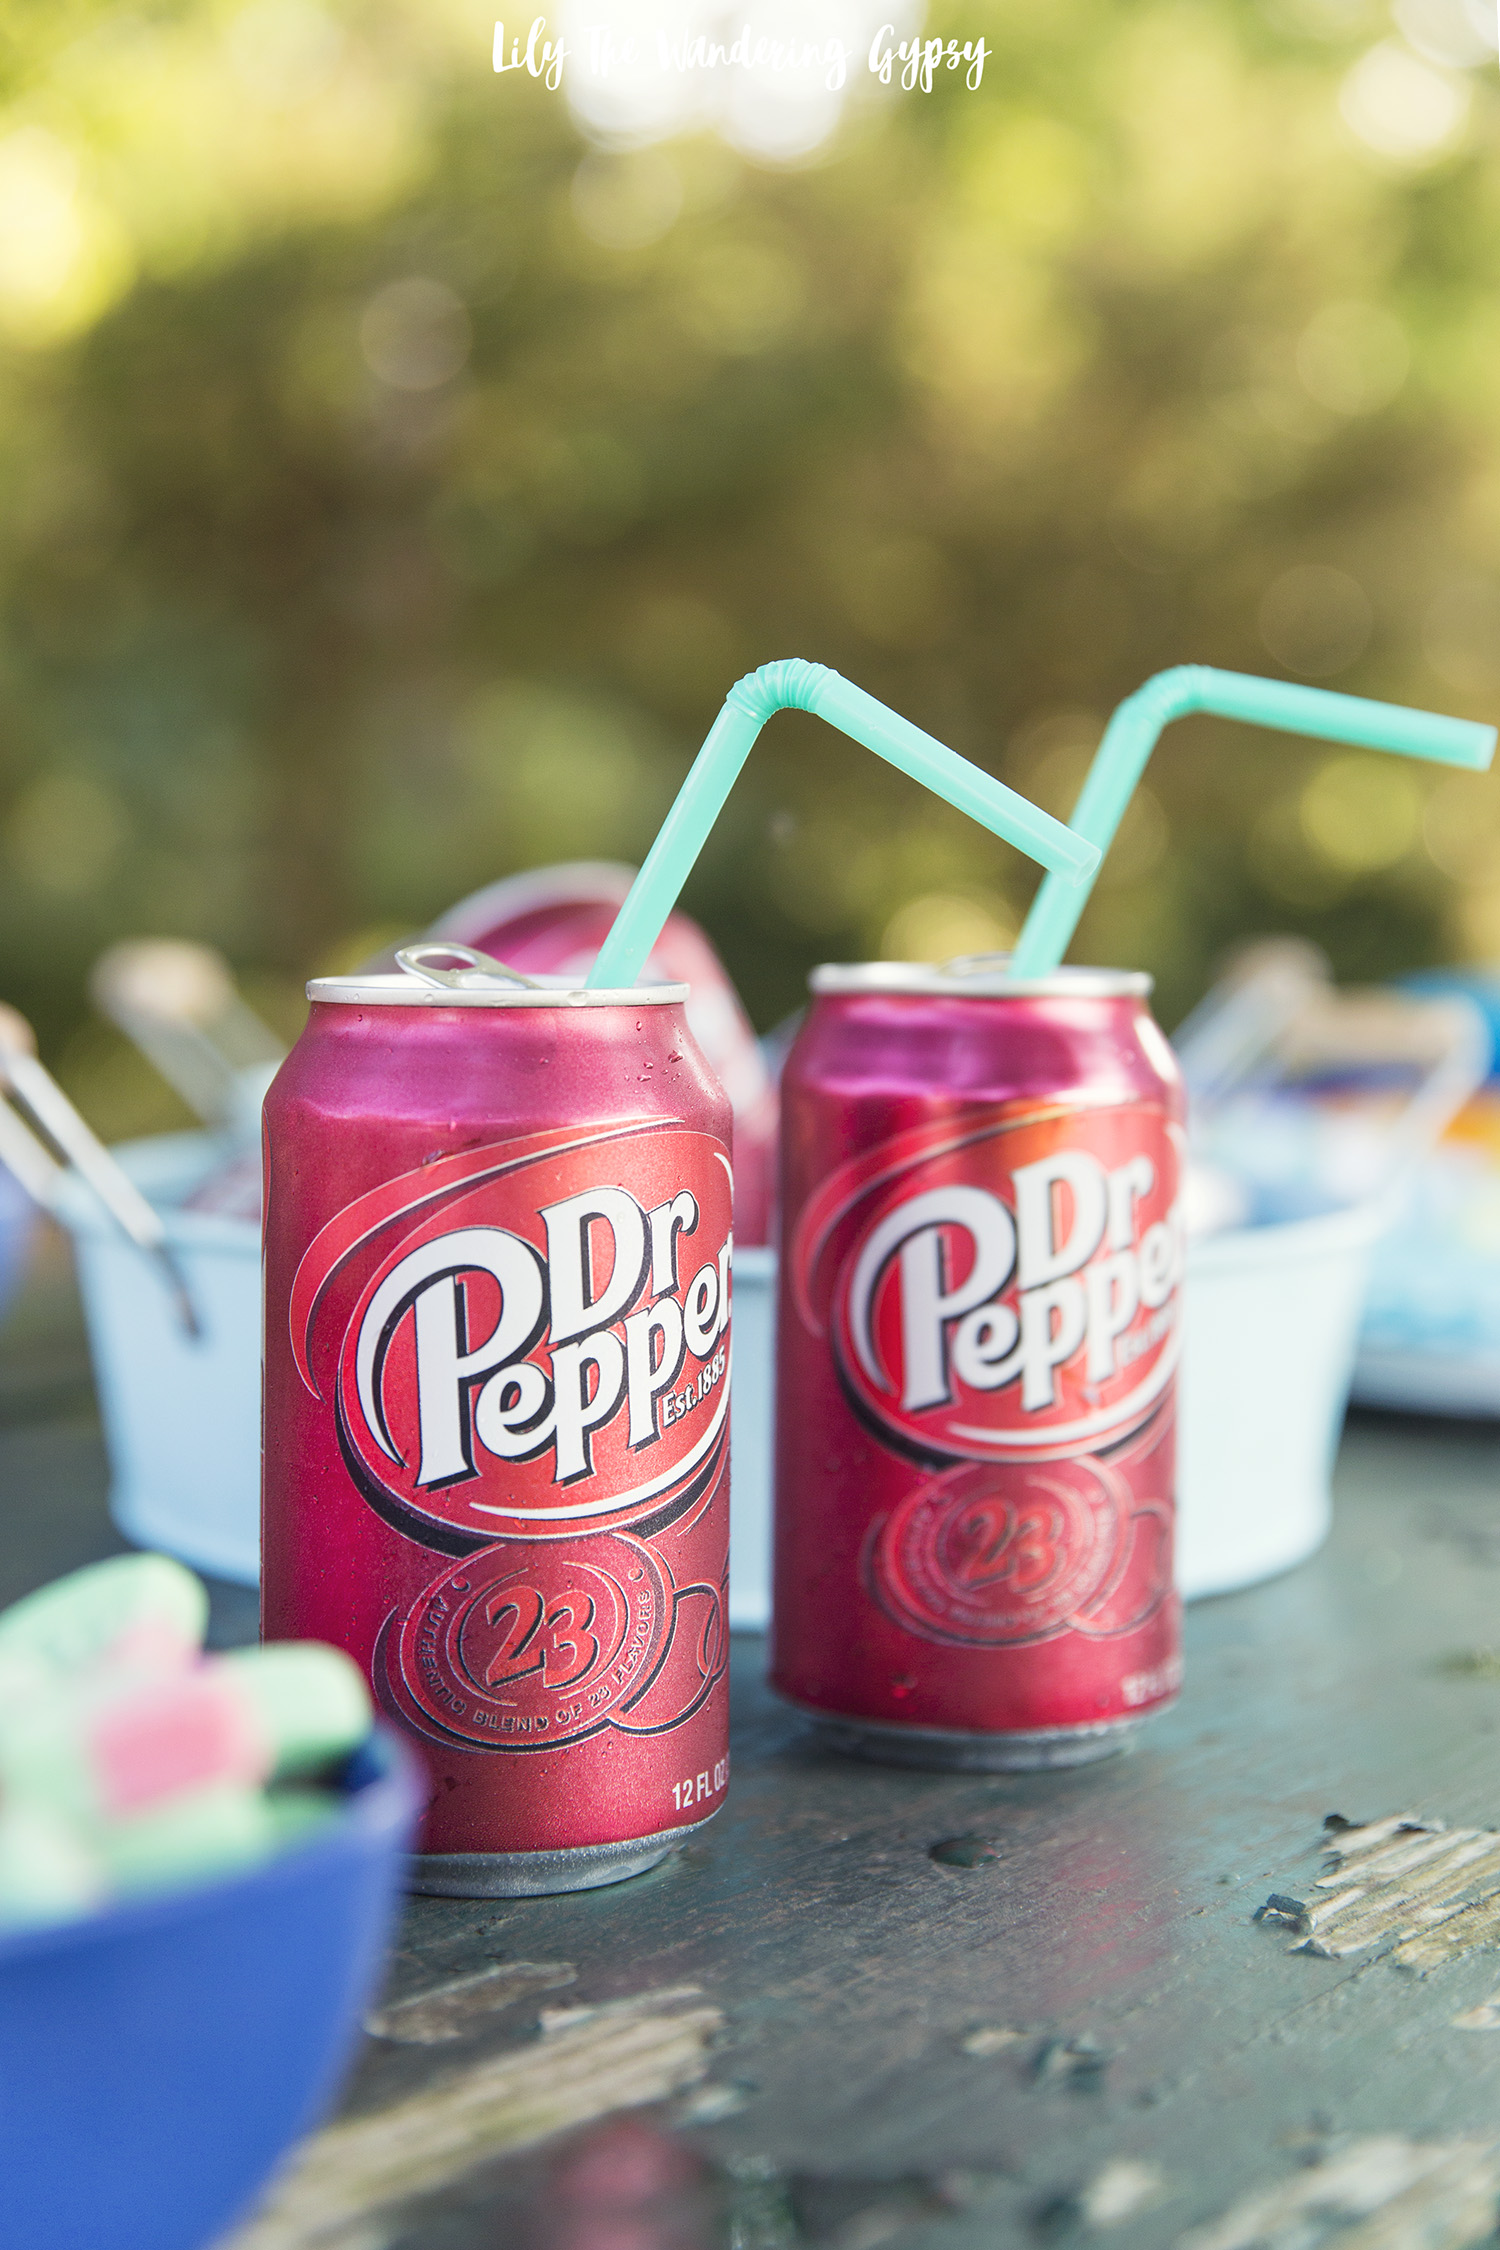 Enjoy The Summer! #PickYourPepper